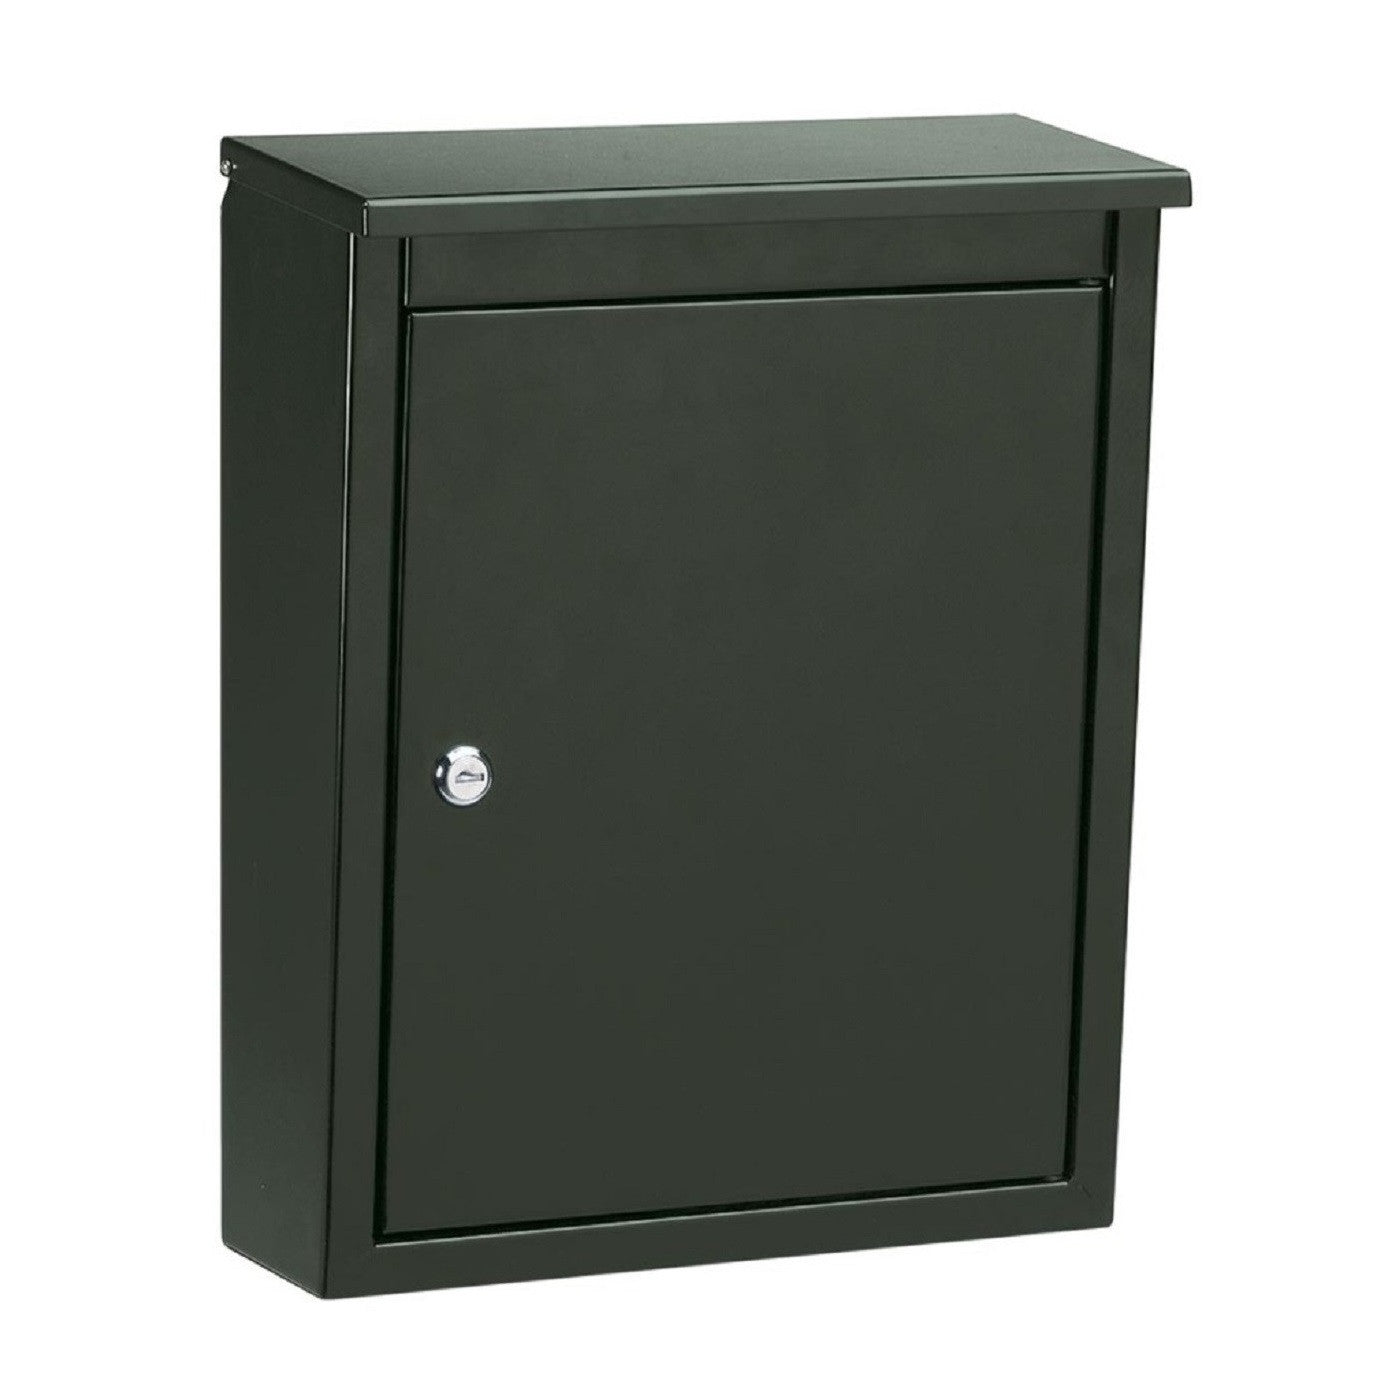 Architectural Mailboxes Soho Metal Lockable Wall Mount